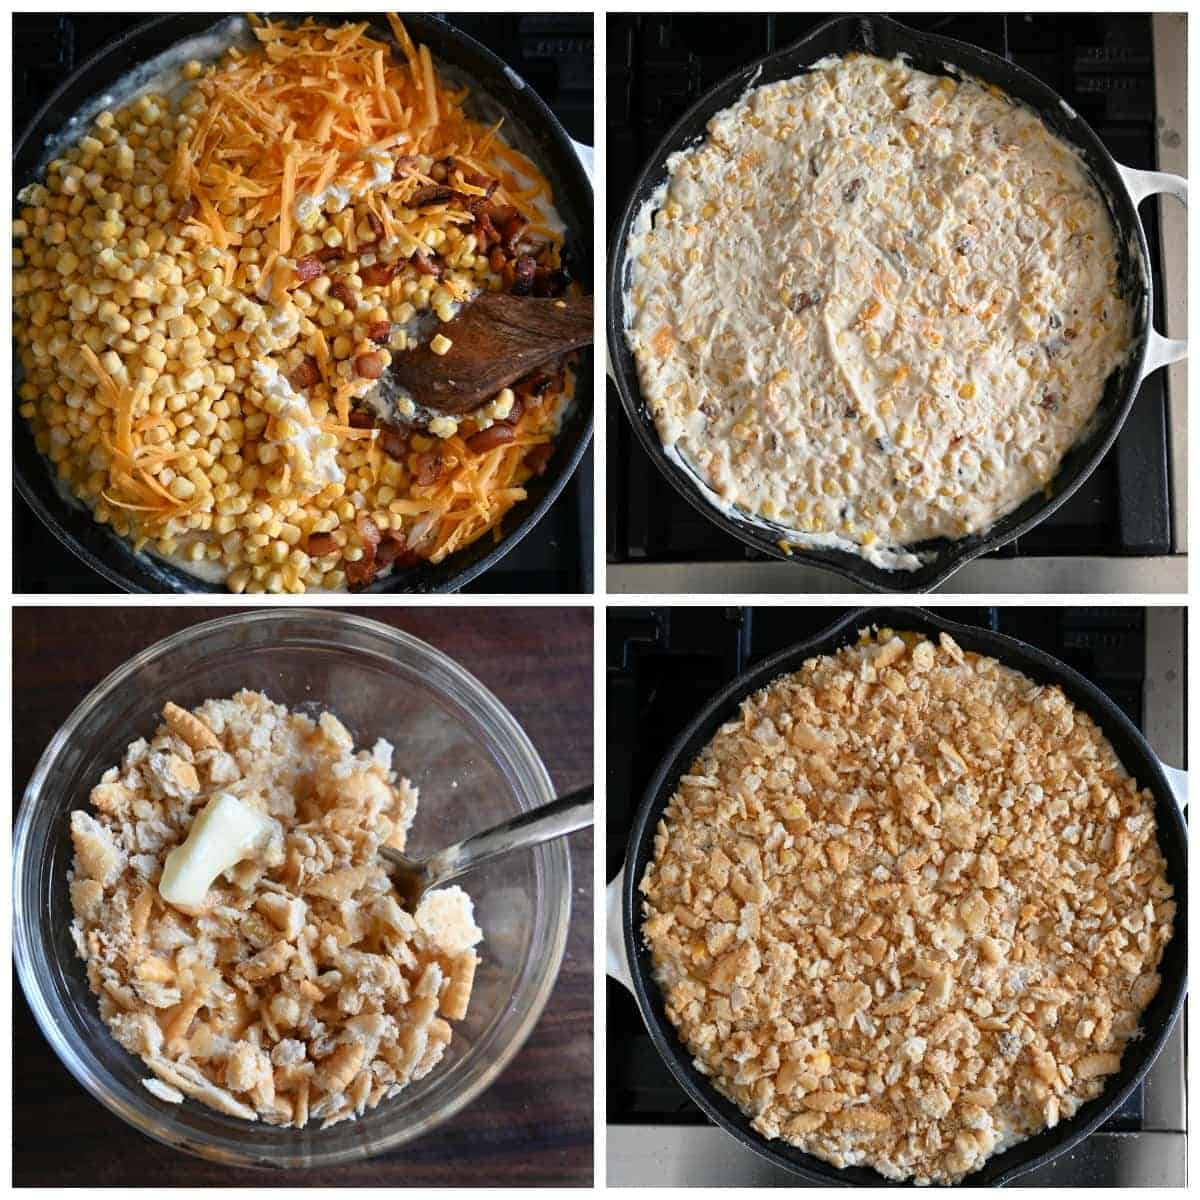 Four process photos. First one, corn, cheese and bacon aded into the creamy mixture. Second one, everything mixed together and ready for the topping. Third one, crushed ritz crackers in a small bowl with melted butter. Fourth one, crushed crackers spread over the top of the cheesy corn mixture.